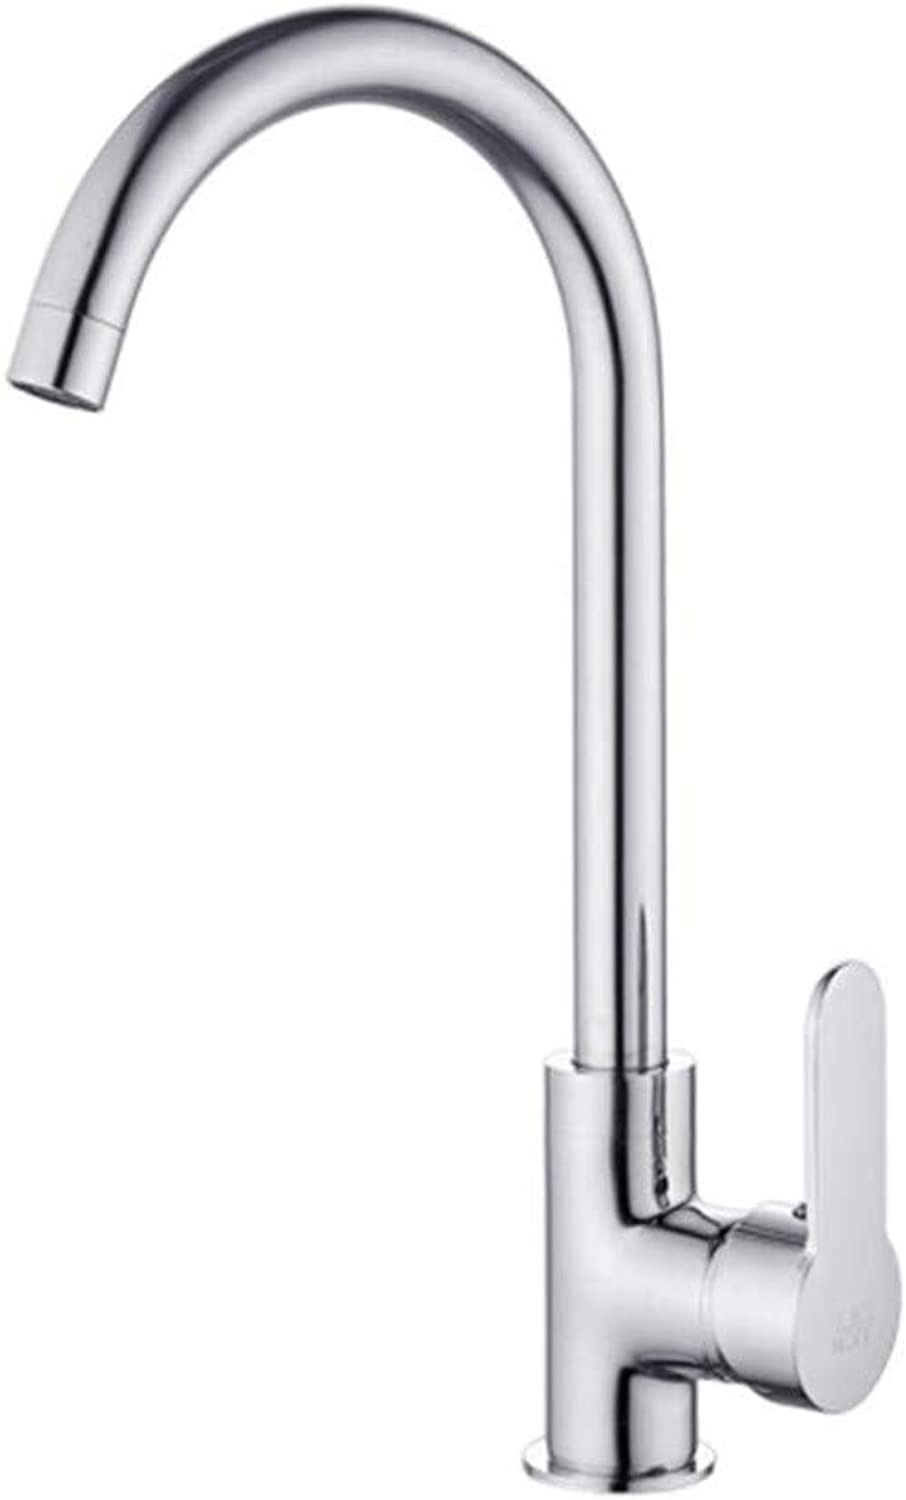 Water Tapdrinking Designer Archredary Single Cold and Hot Vegetable Basin Sink Faucet Cold and Hot Kitchen Faucet